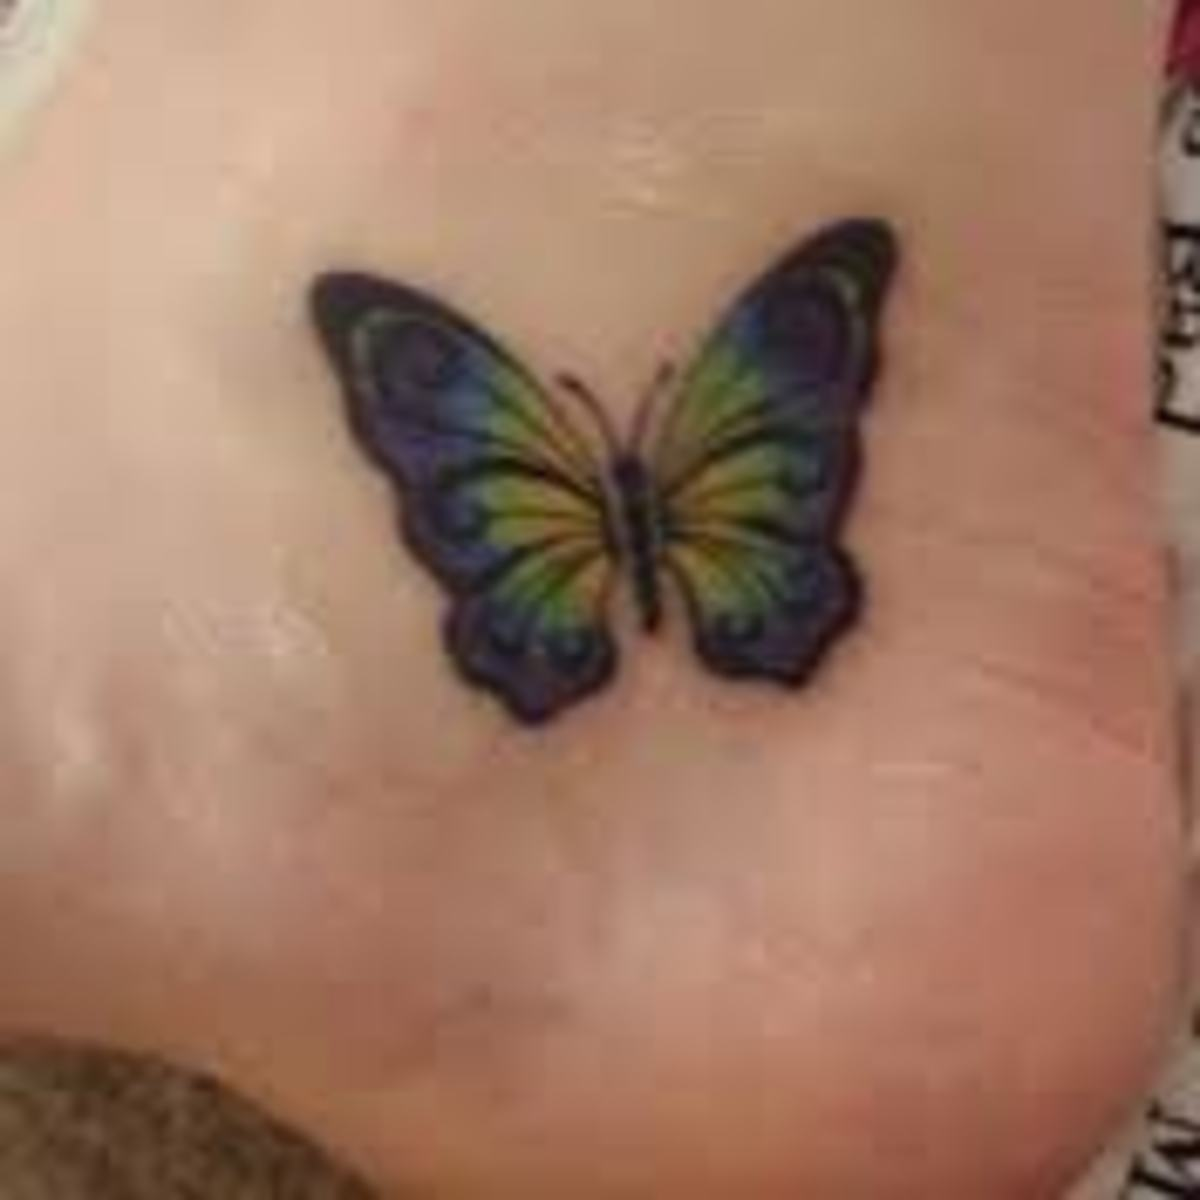 great-butterfly-ankle-tattoos-ideas-and-meanings-butterfly-tattoos-and-beautiful-designs